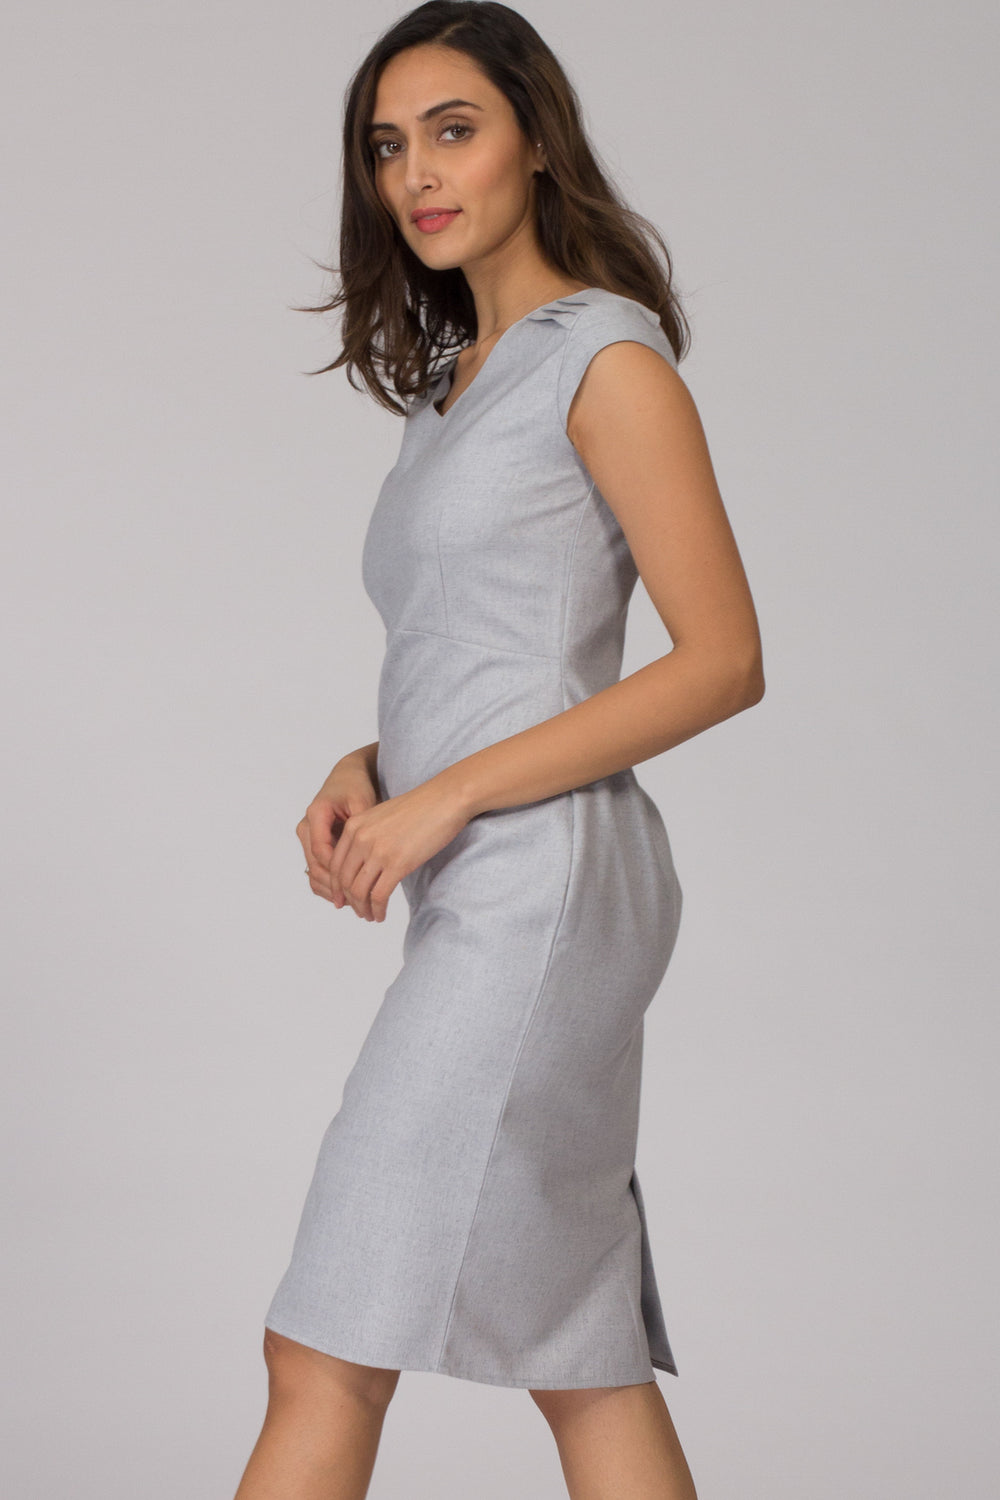 Napoli Stone Blue Shift Dress